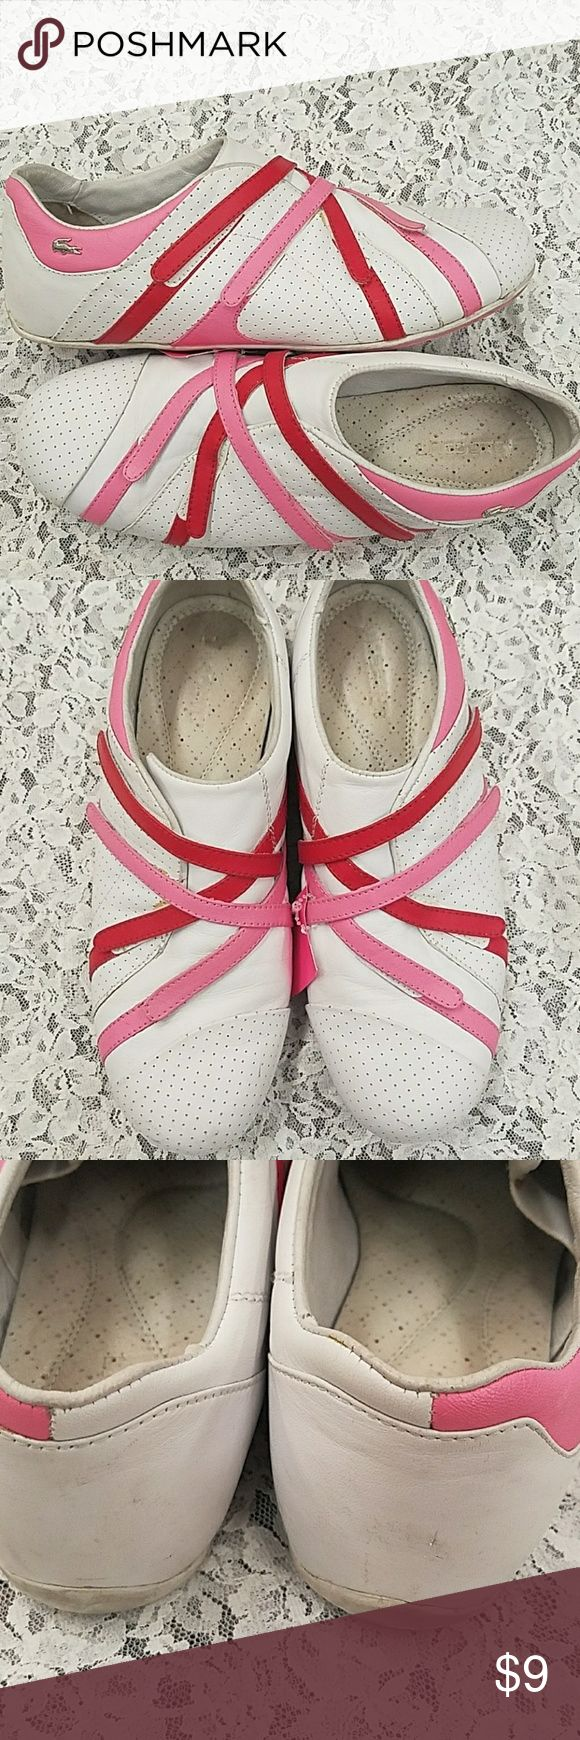 Lacoste pink white sneakers 8.5 App for potatoes au pair of shoes that were worn a few times and have been thoroughly cleaned inside and out. Superficial marks Lacoste Shoes